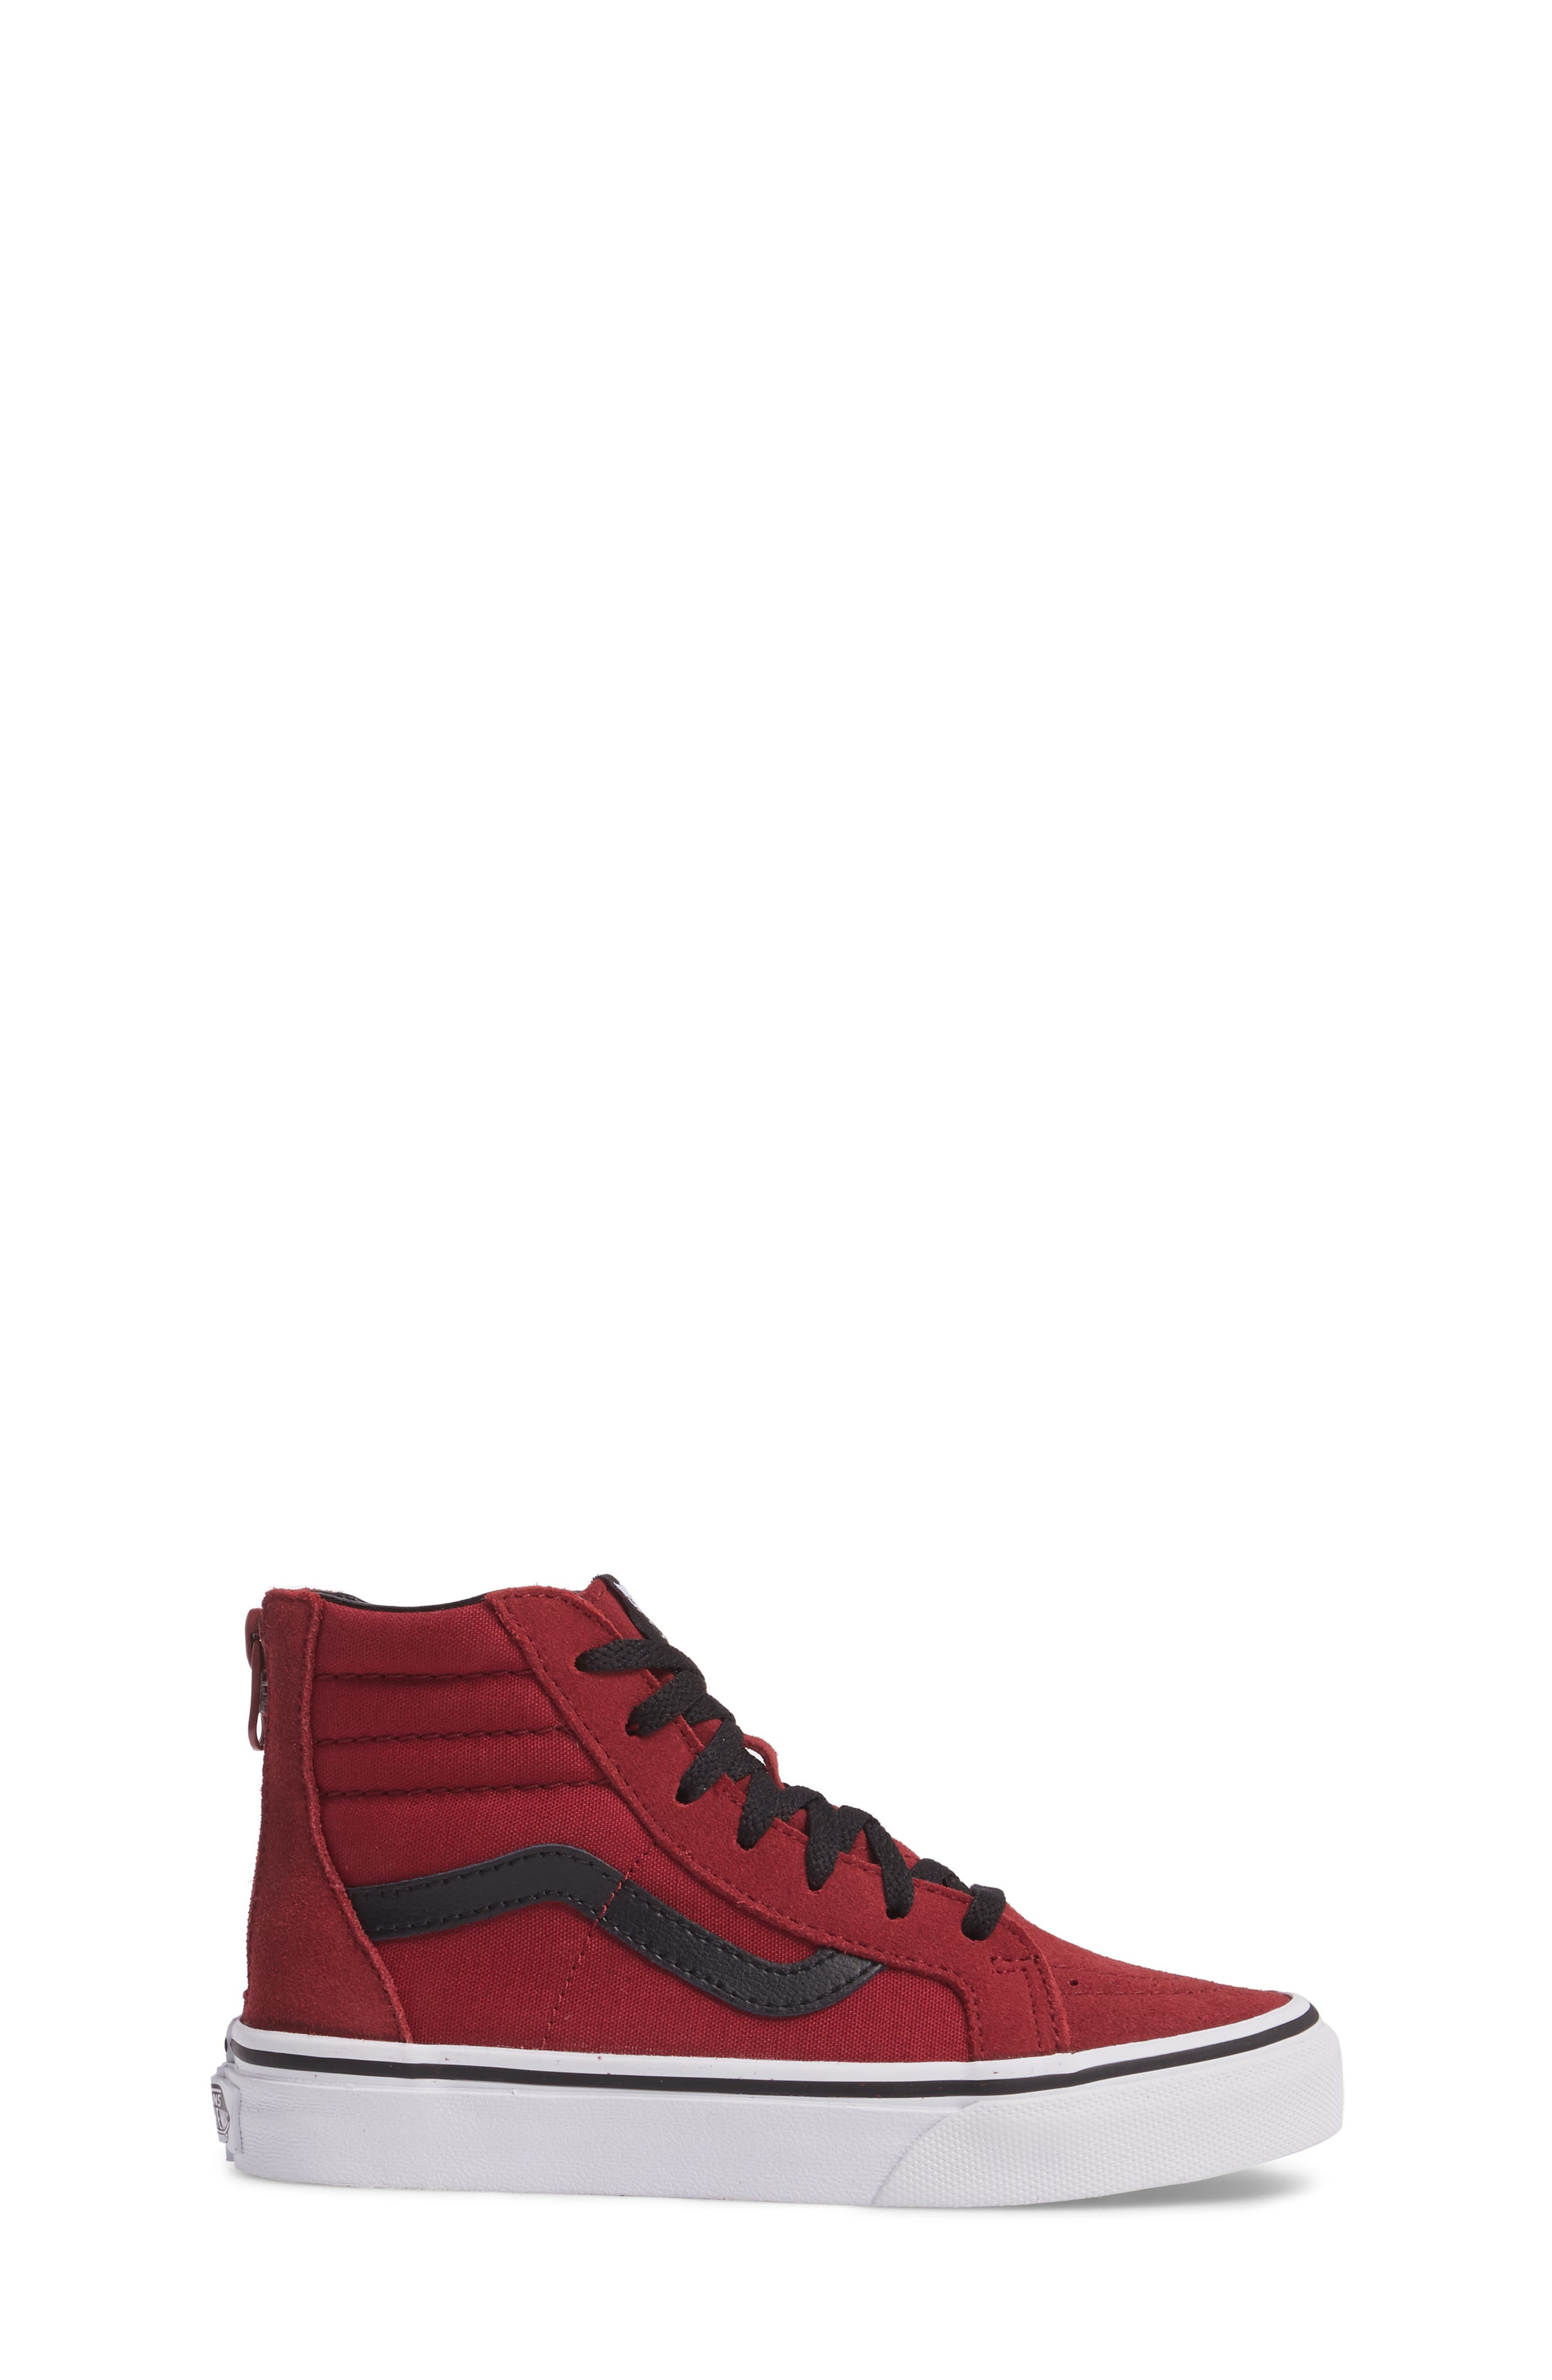 SK8-Hi Zip Sneaker,                             Alternate thumbnail 3, color,                             TIBETAN RED/ BLACK